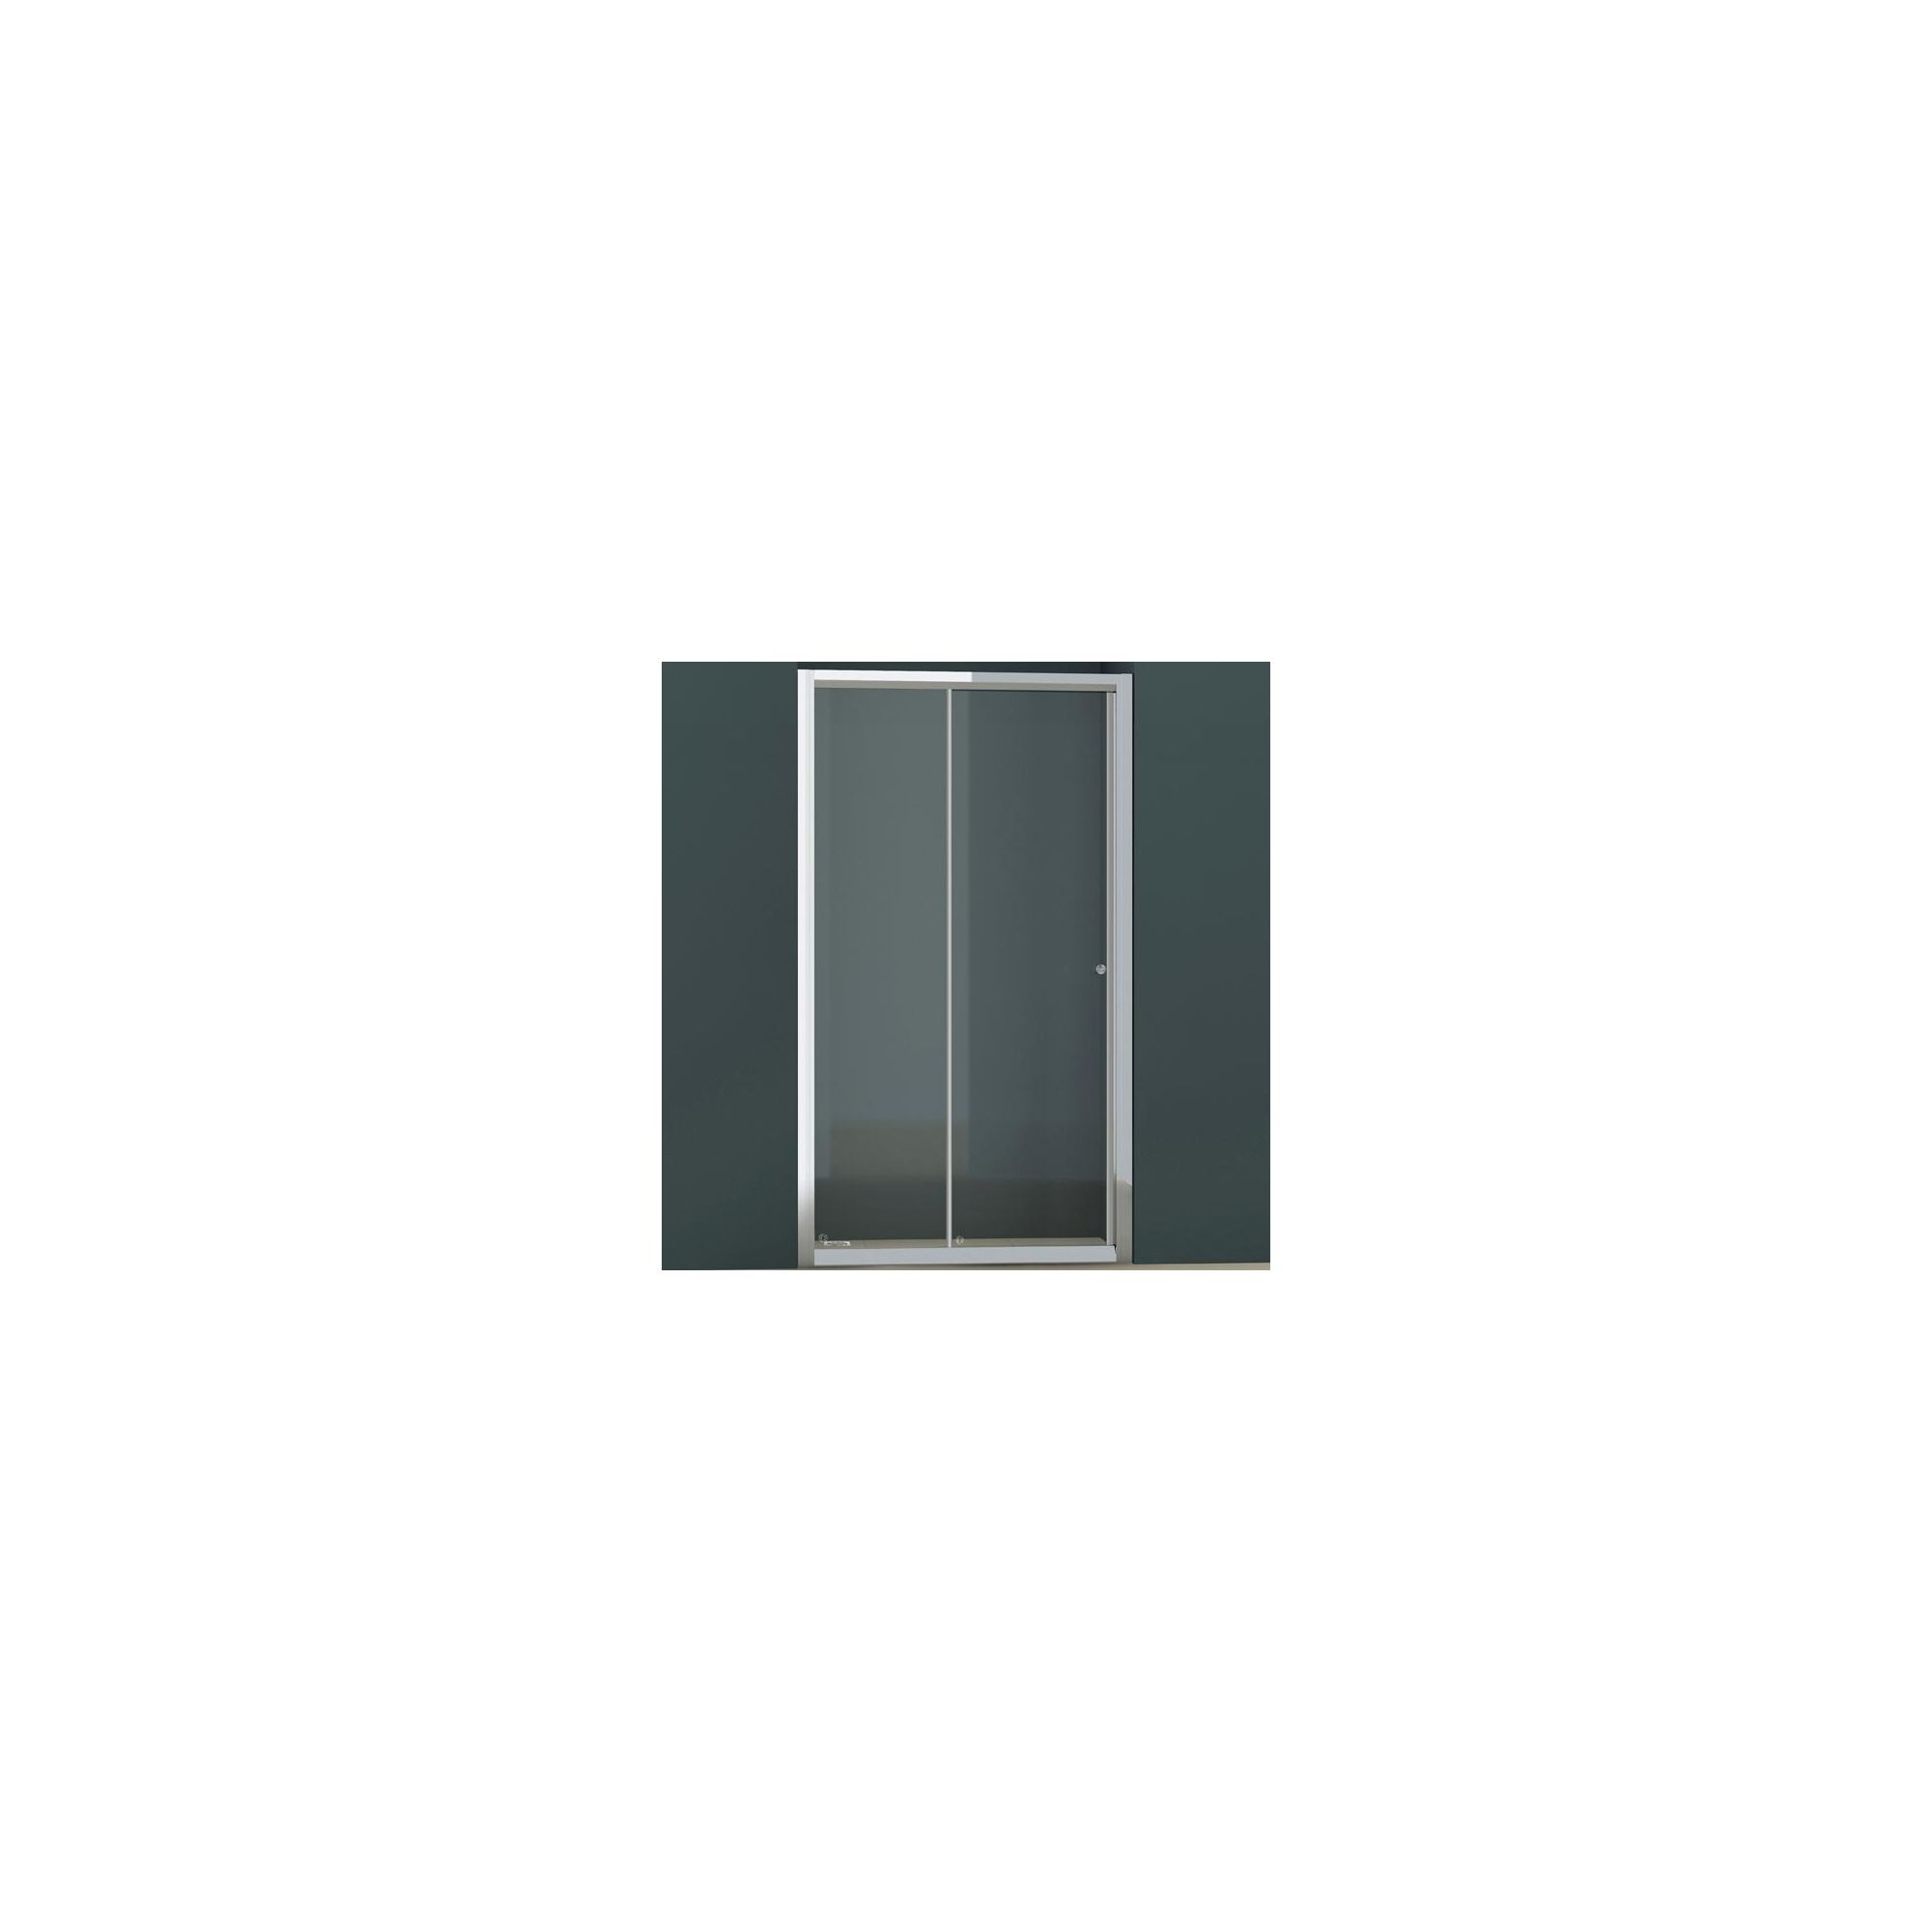 Vessini E Series Sliding Shower Door, 1200mm Wide, 6mm Glass at Tesco Direct